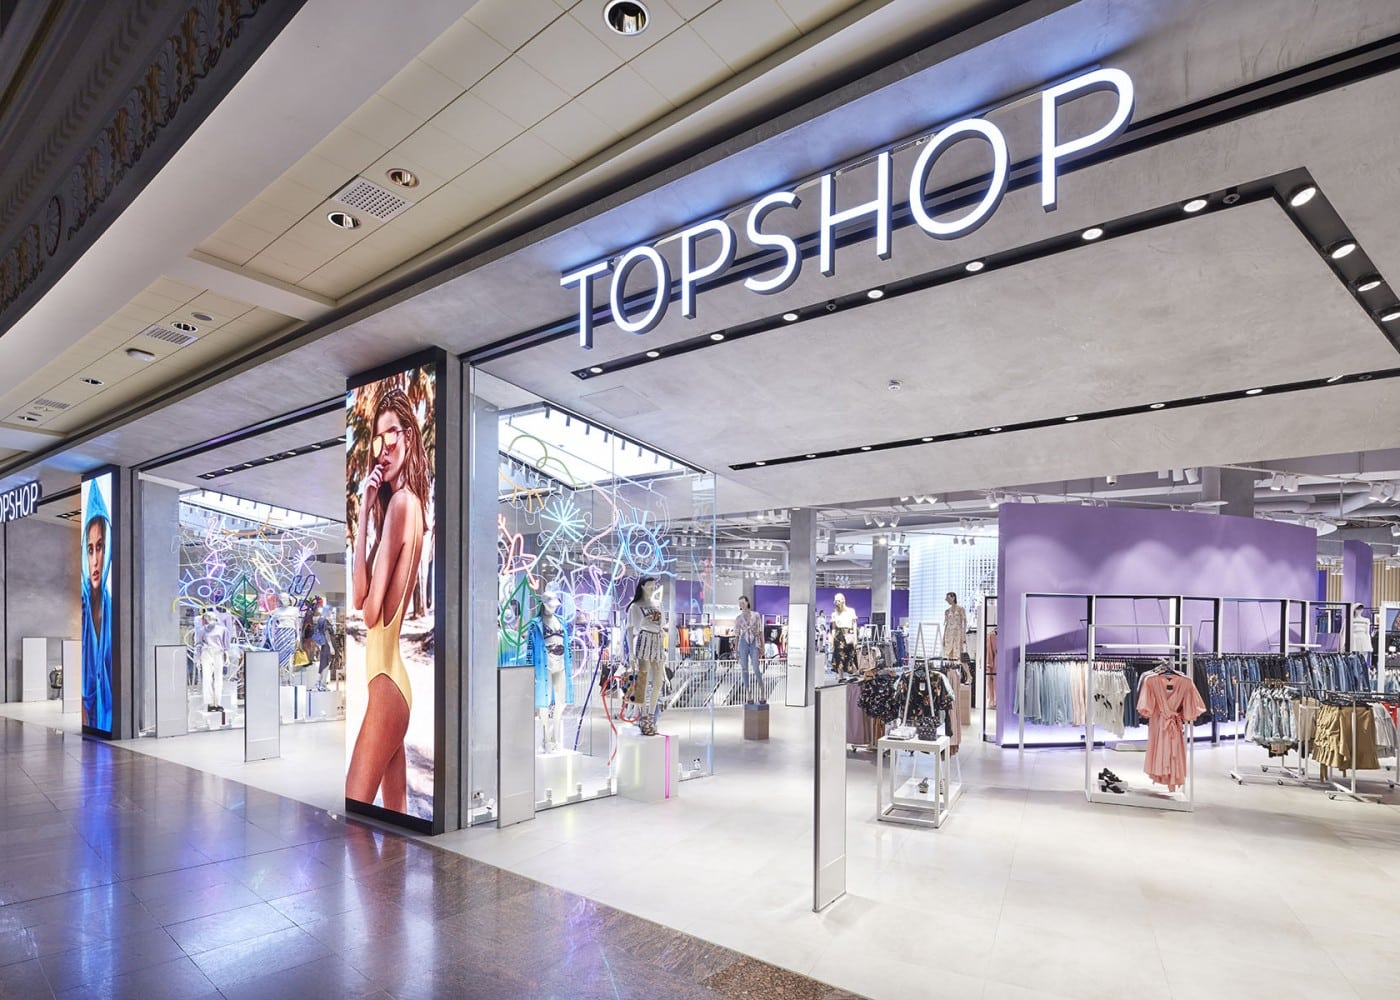 retail lighting design: Topshop exterior